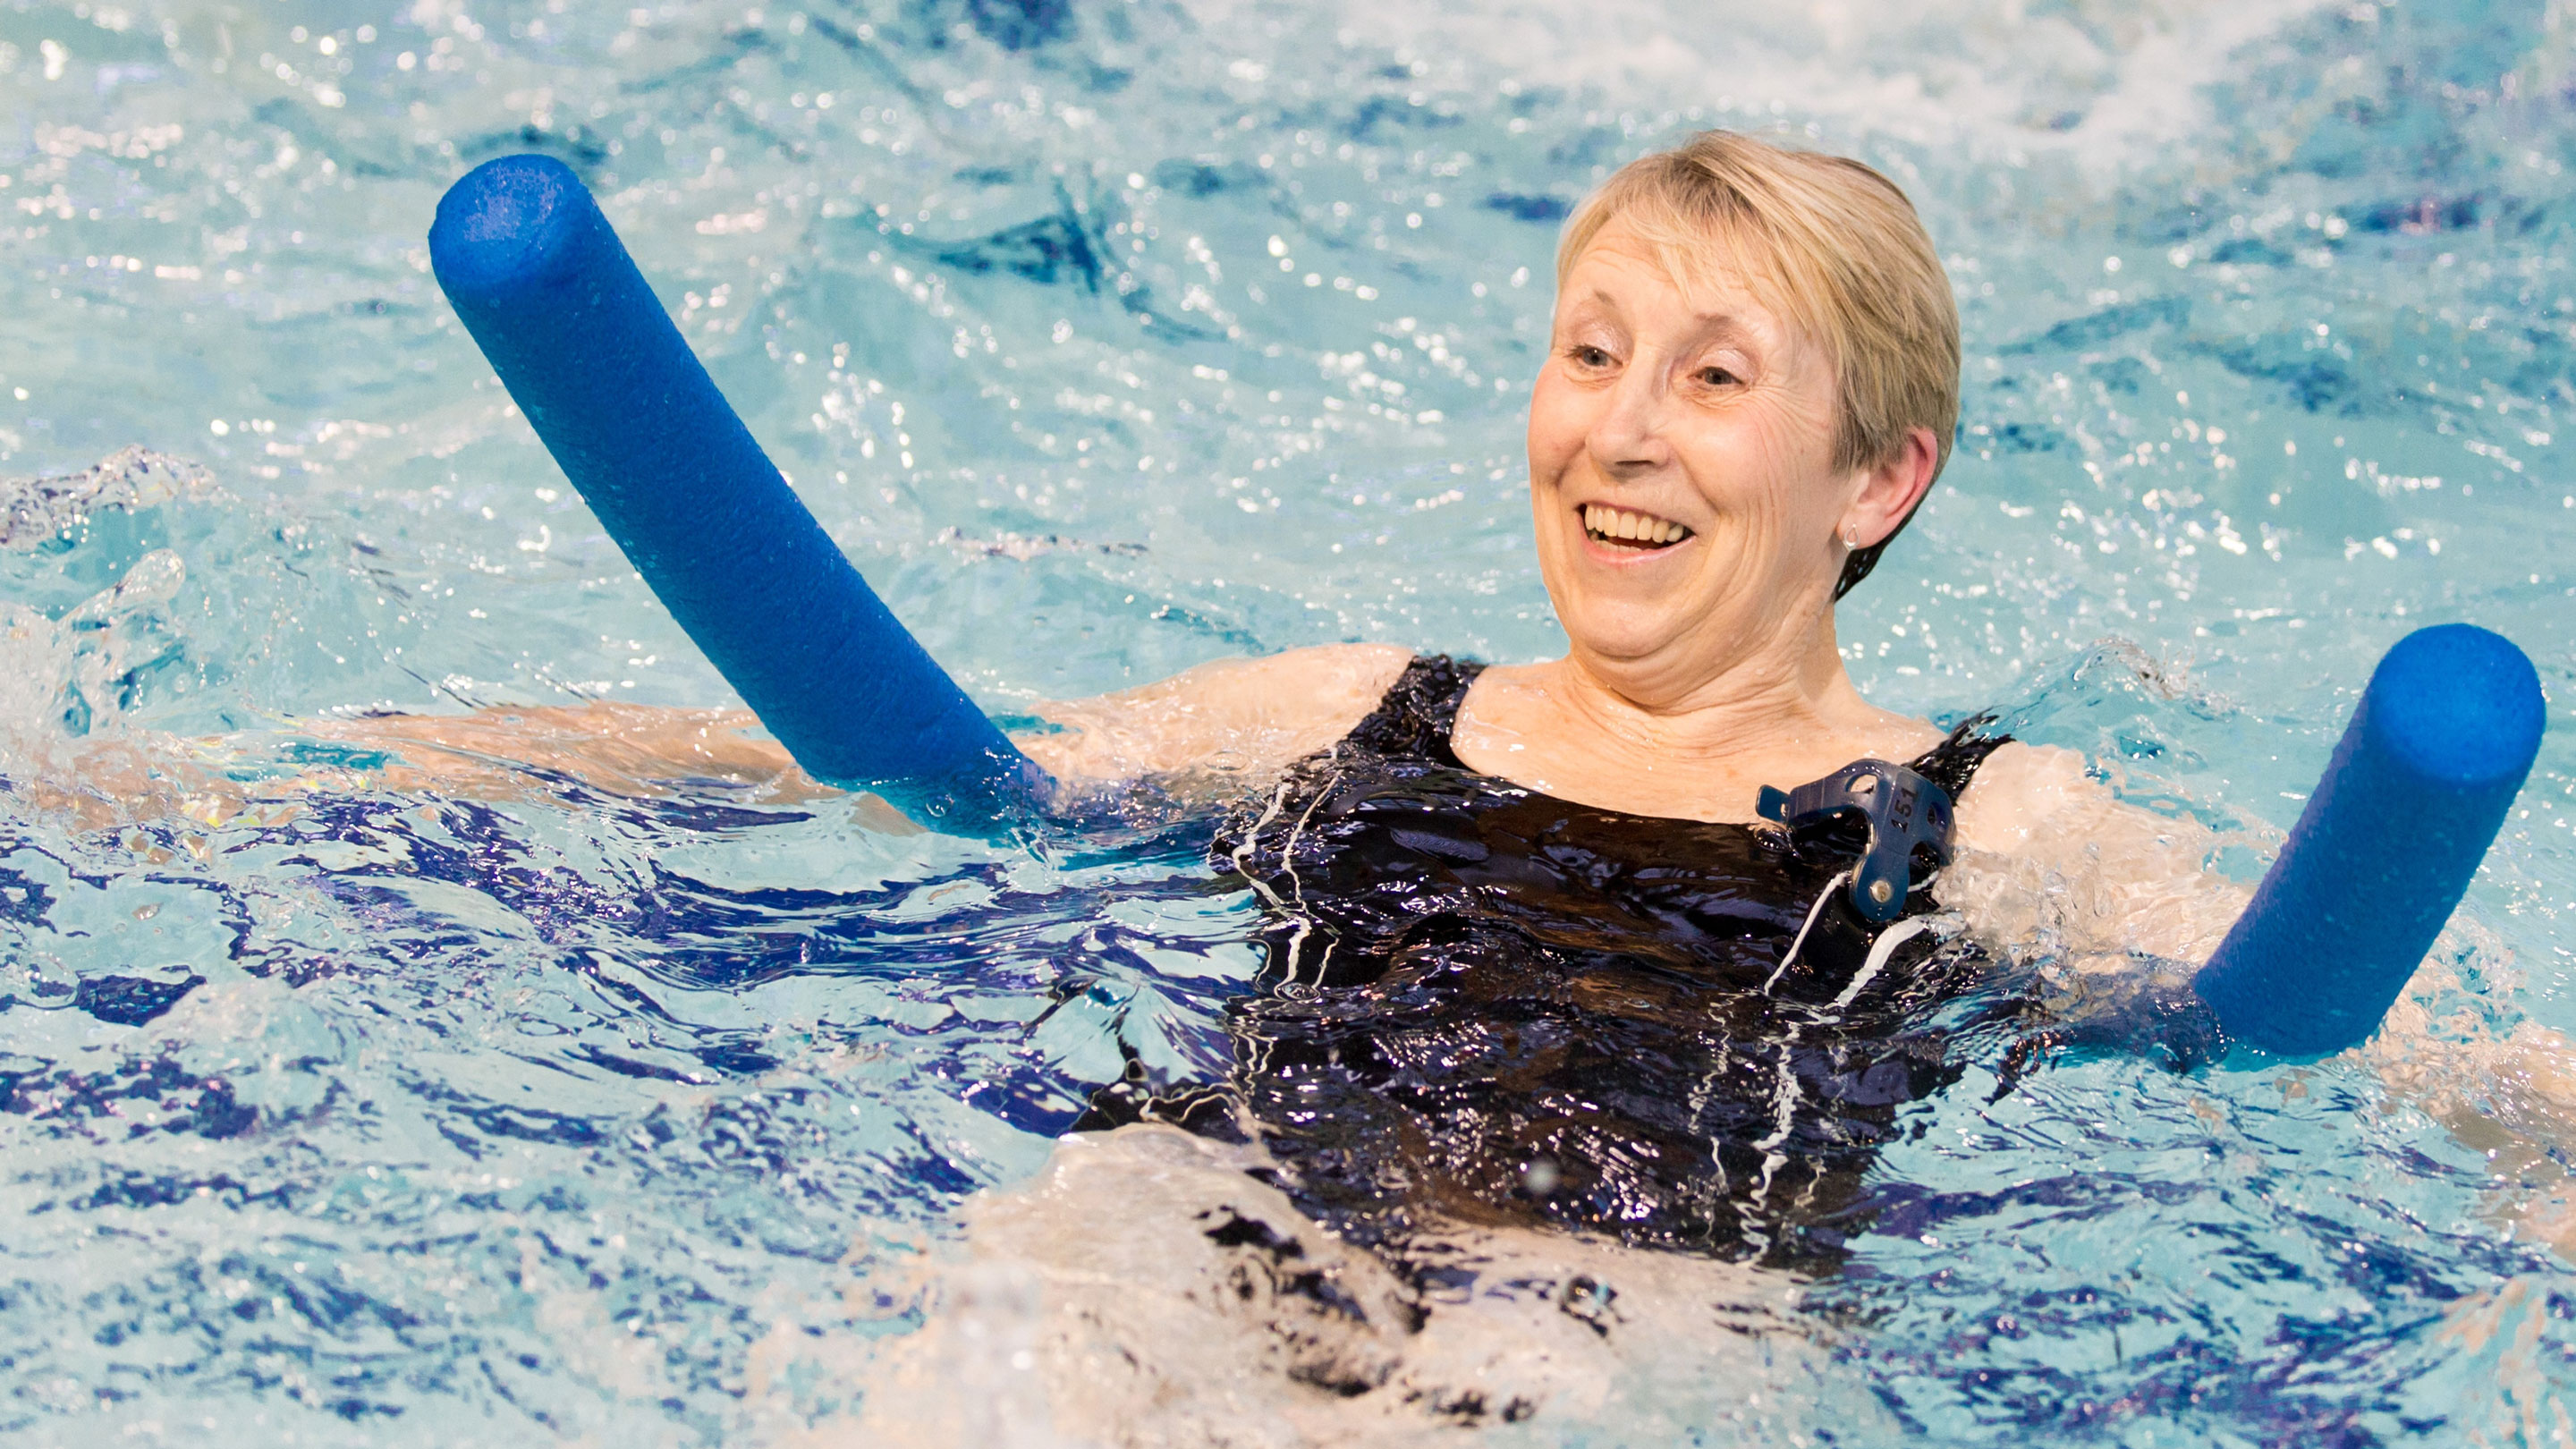 Institute of Swimming to deliver new aquatic health qualification